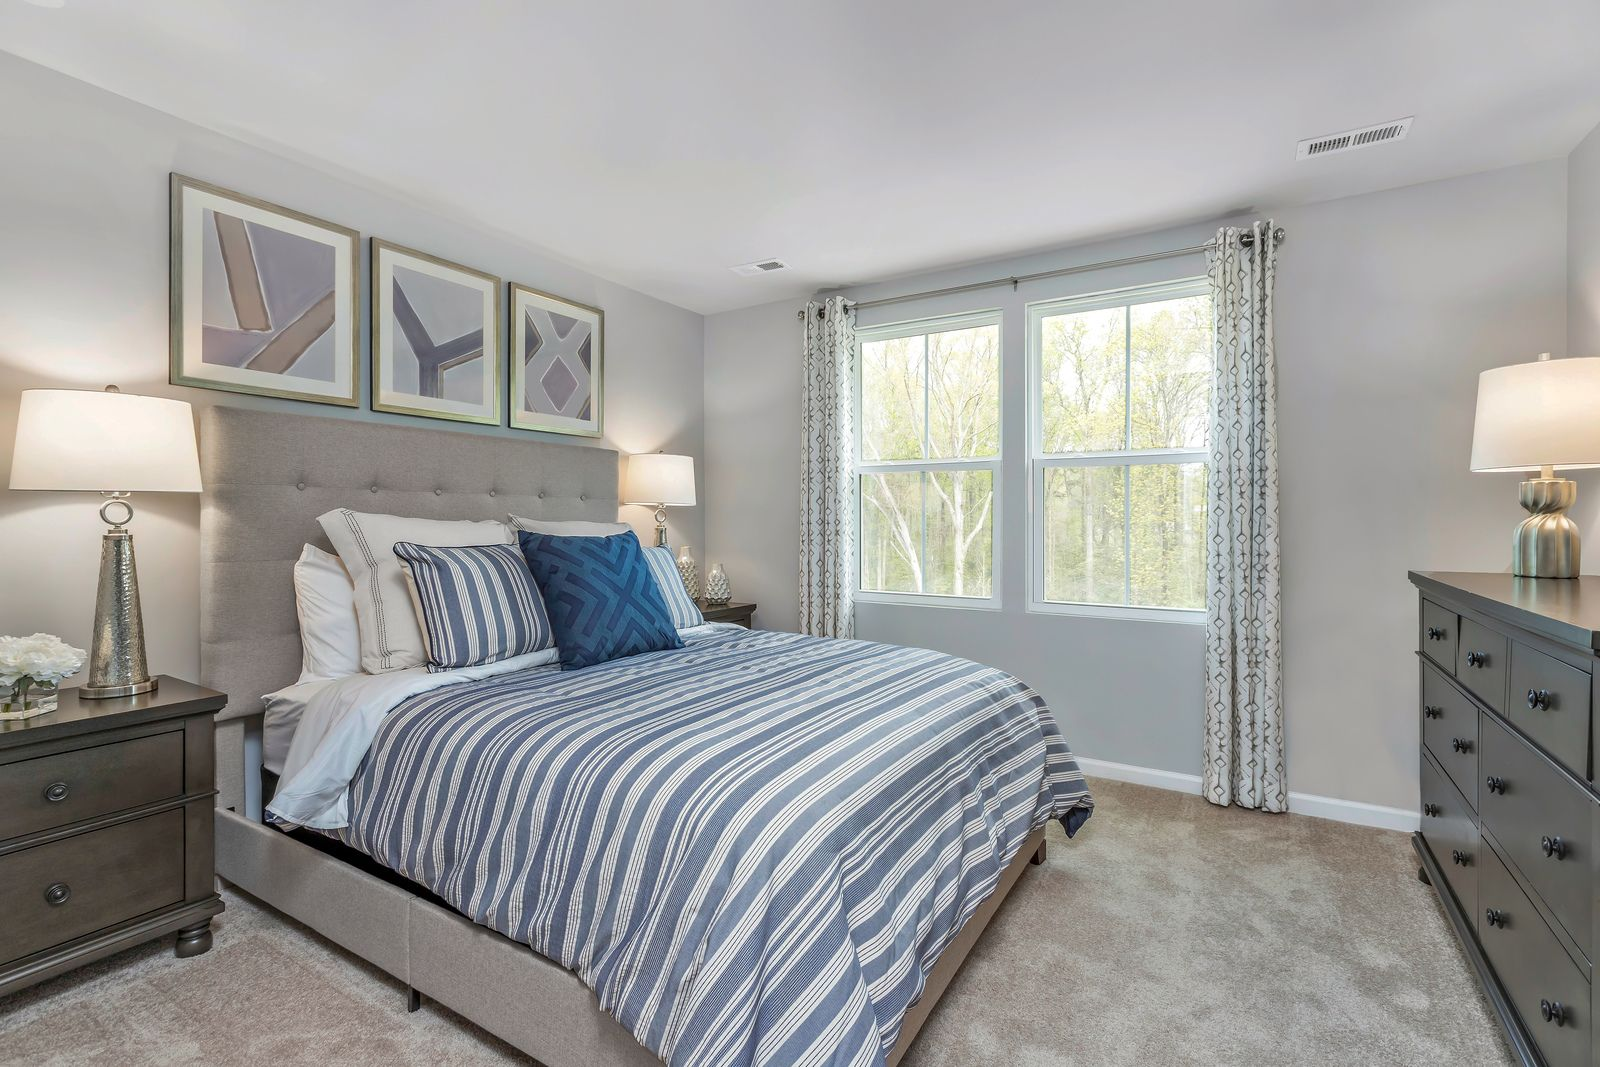 Bedroom featured in the Juniper Basement By Ryan Homes in Greenville-Spartanburg, SC